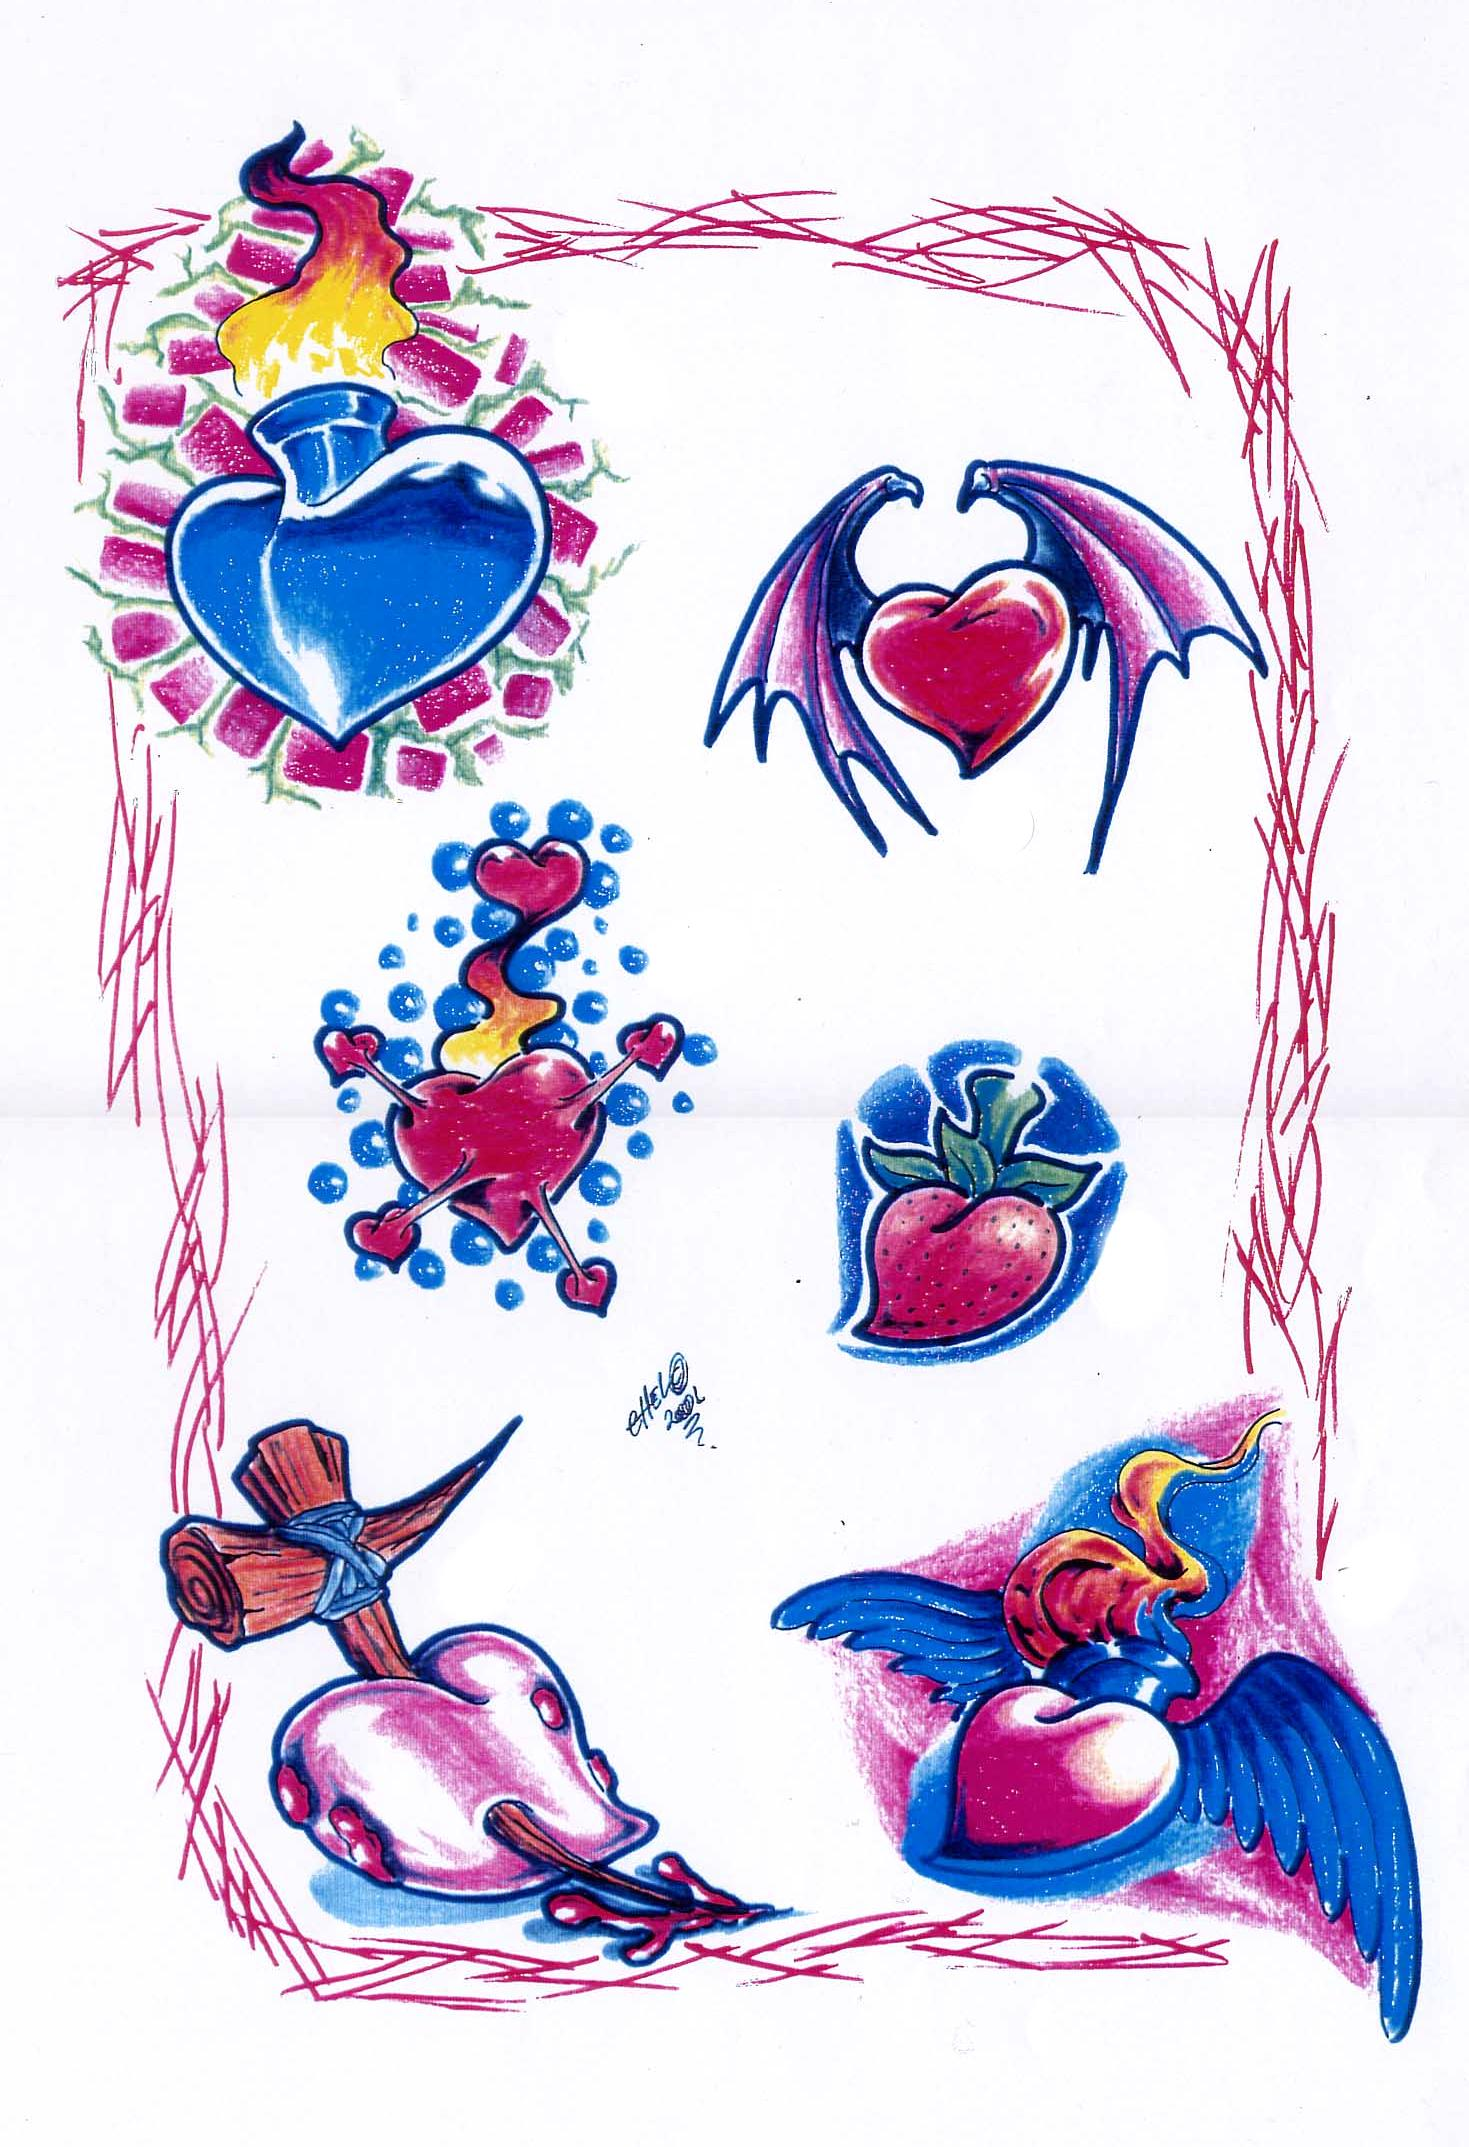 Heart tattoo designs by Chel.